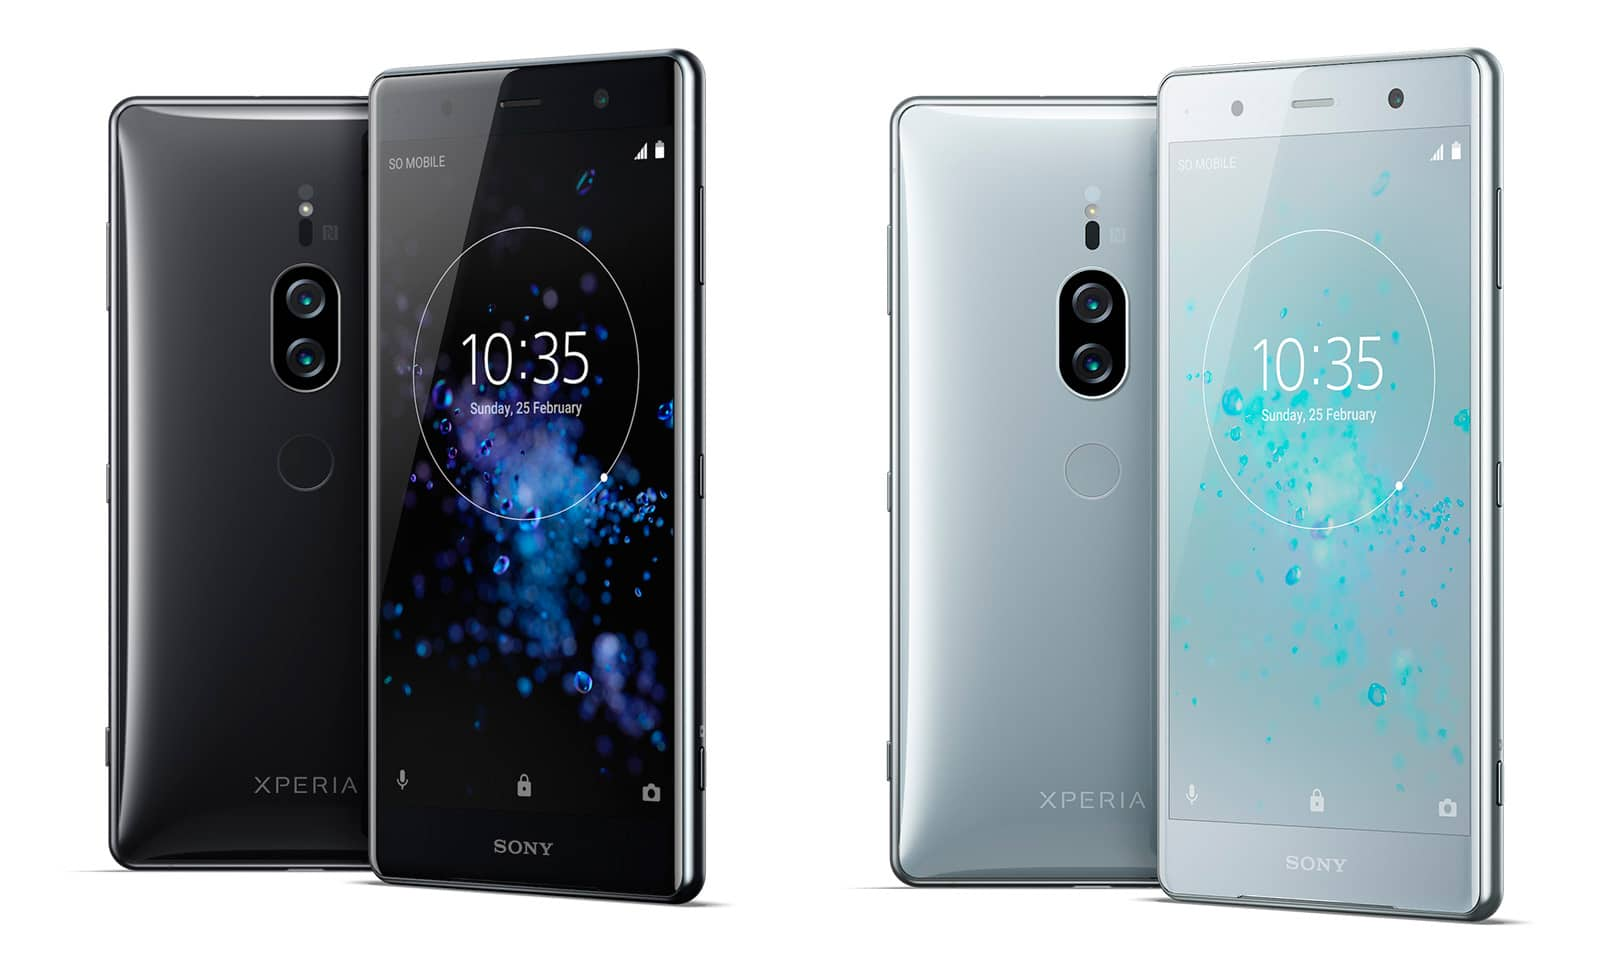 Sony's Xperia XZ2 Premium Gets A July 30th Release Date